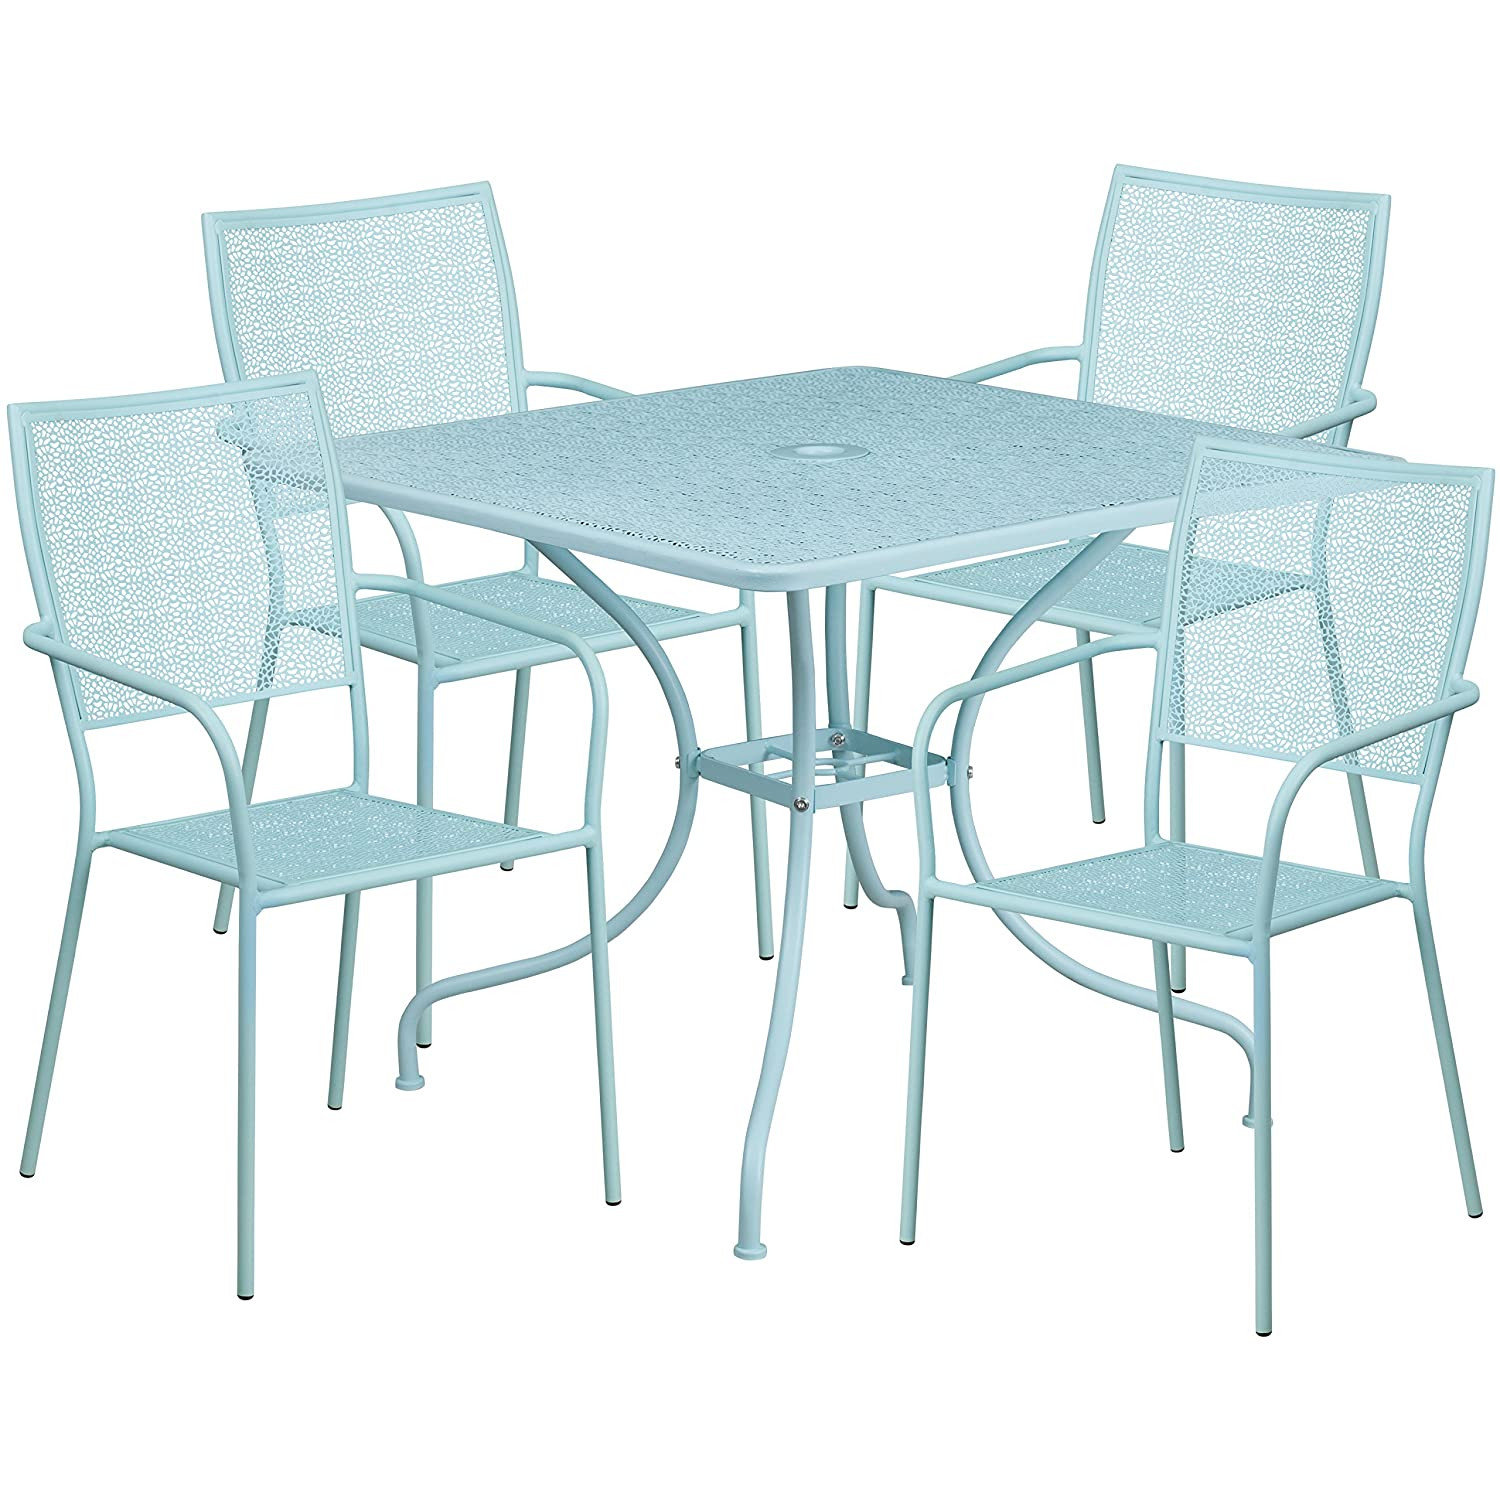 Flash Furniture 35 5 Square Black Indoor Outdoor Steel Patio Table Set With 4 Square Back Chairs Kitchen Dining Dprd Tasikmalayakab Go Id